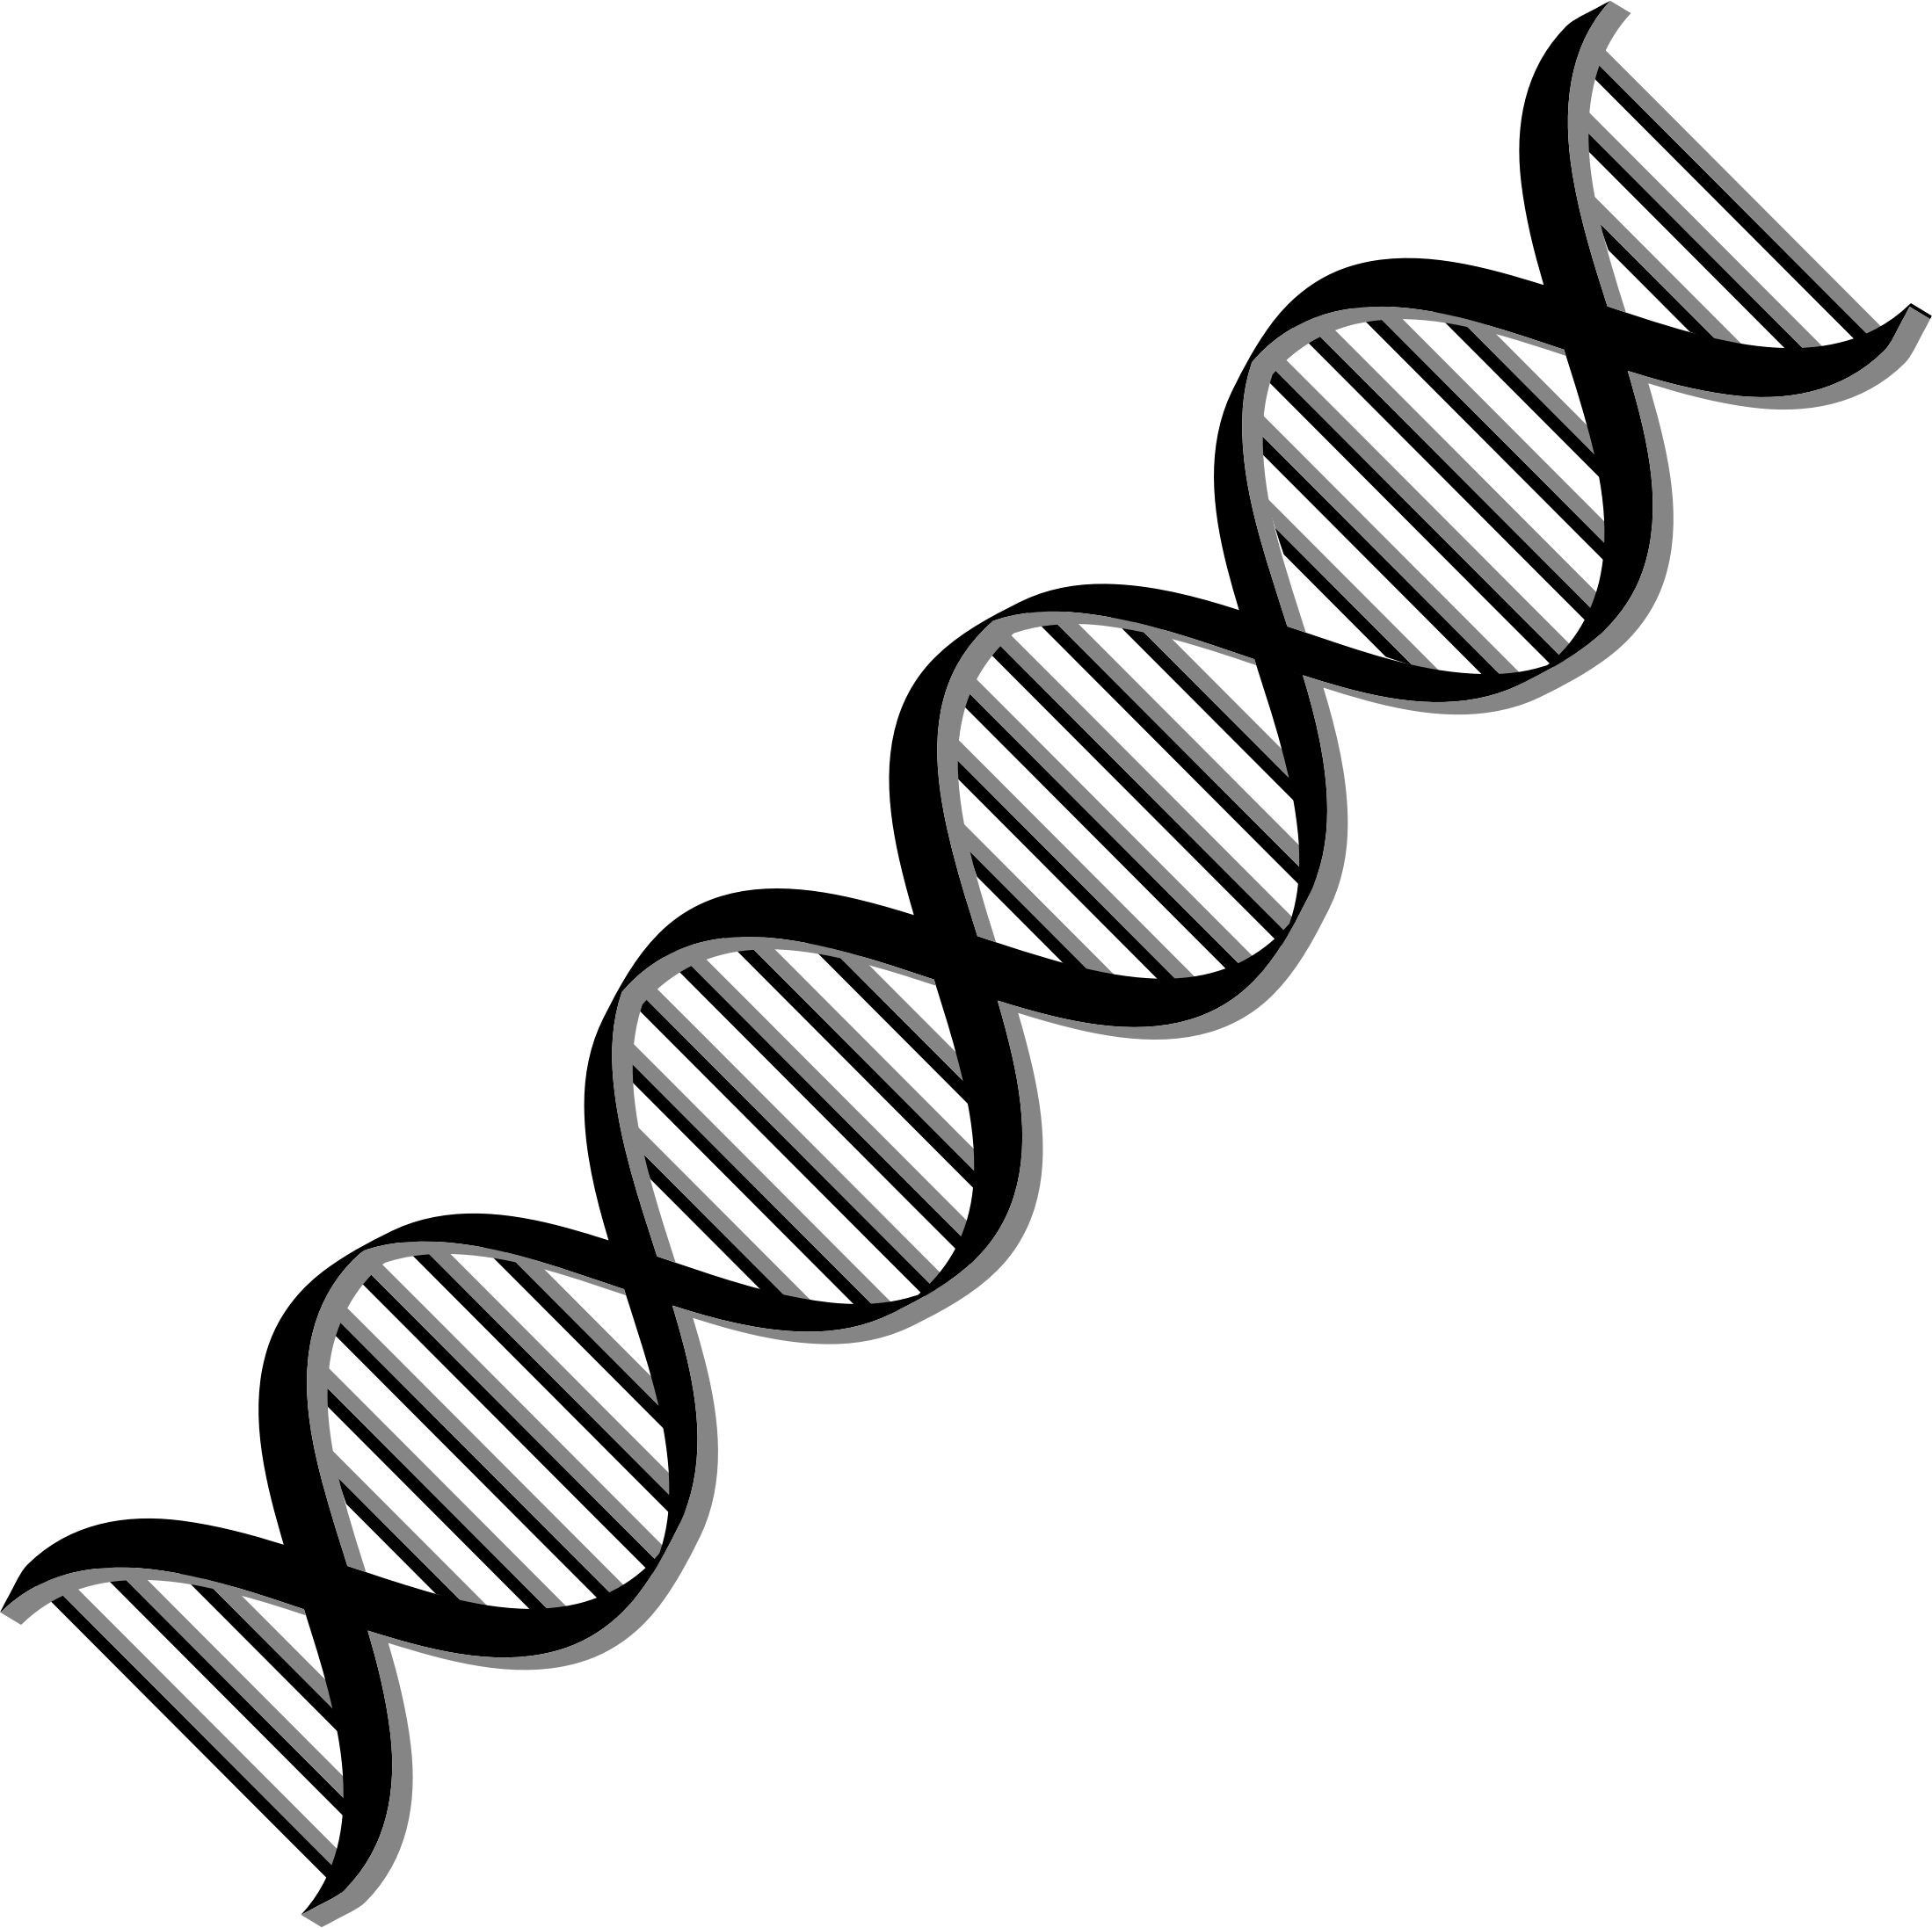 Dna helix png. Variation icons free and